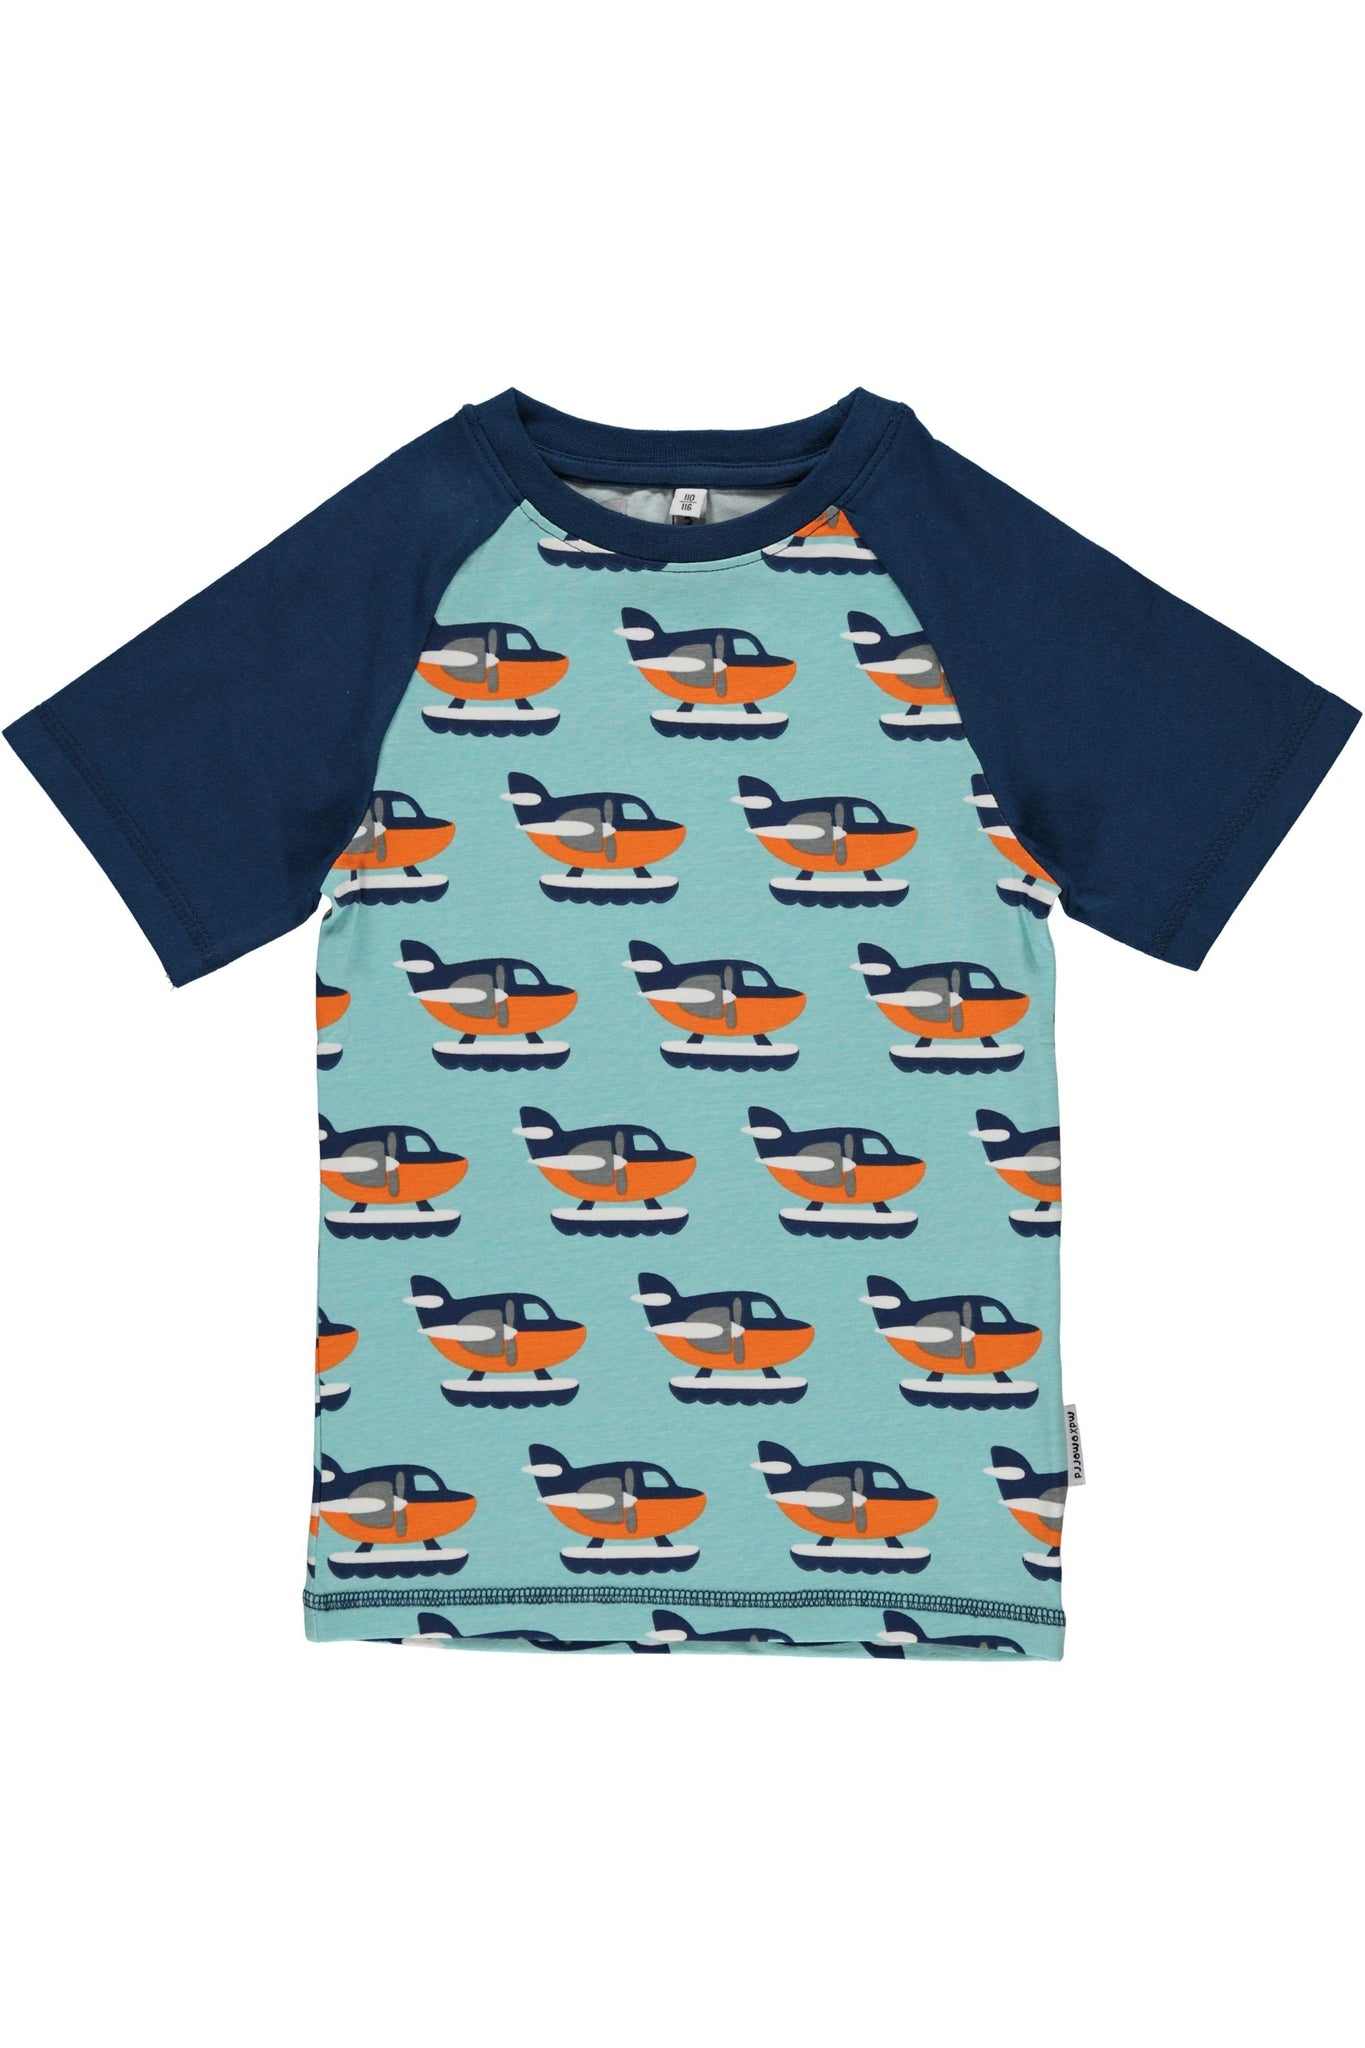 Sea Plane T-Shirt Slim Fit - Maxomorra  - Snugglefox